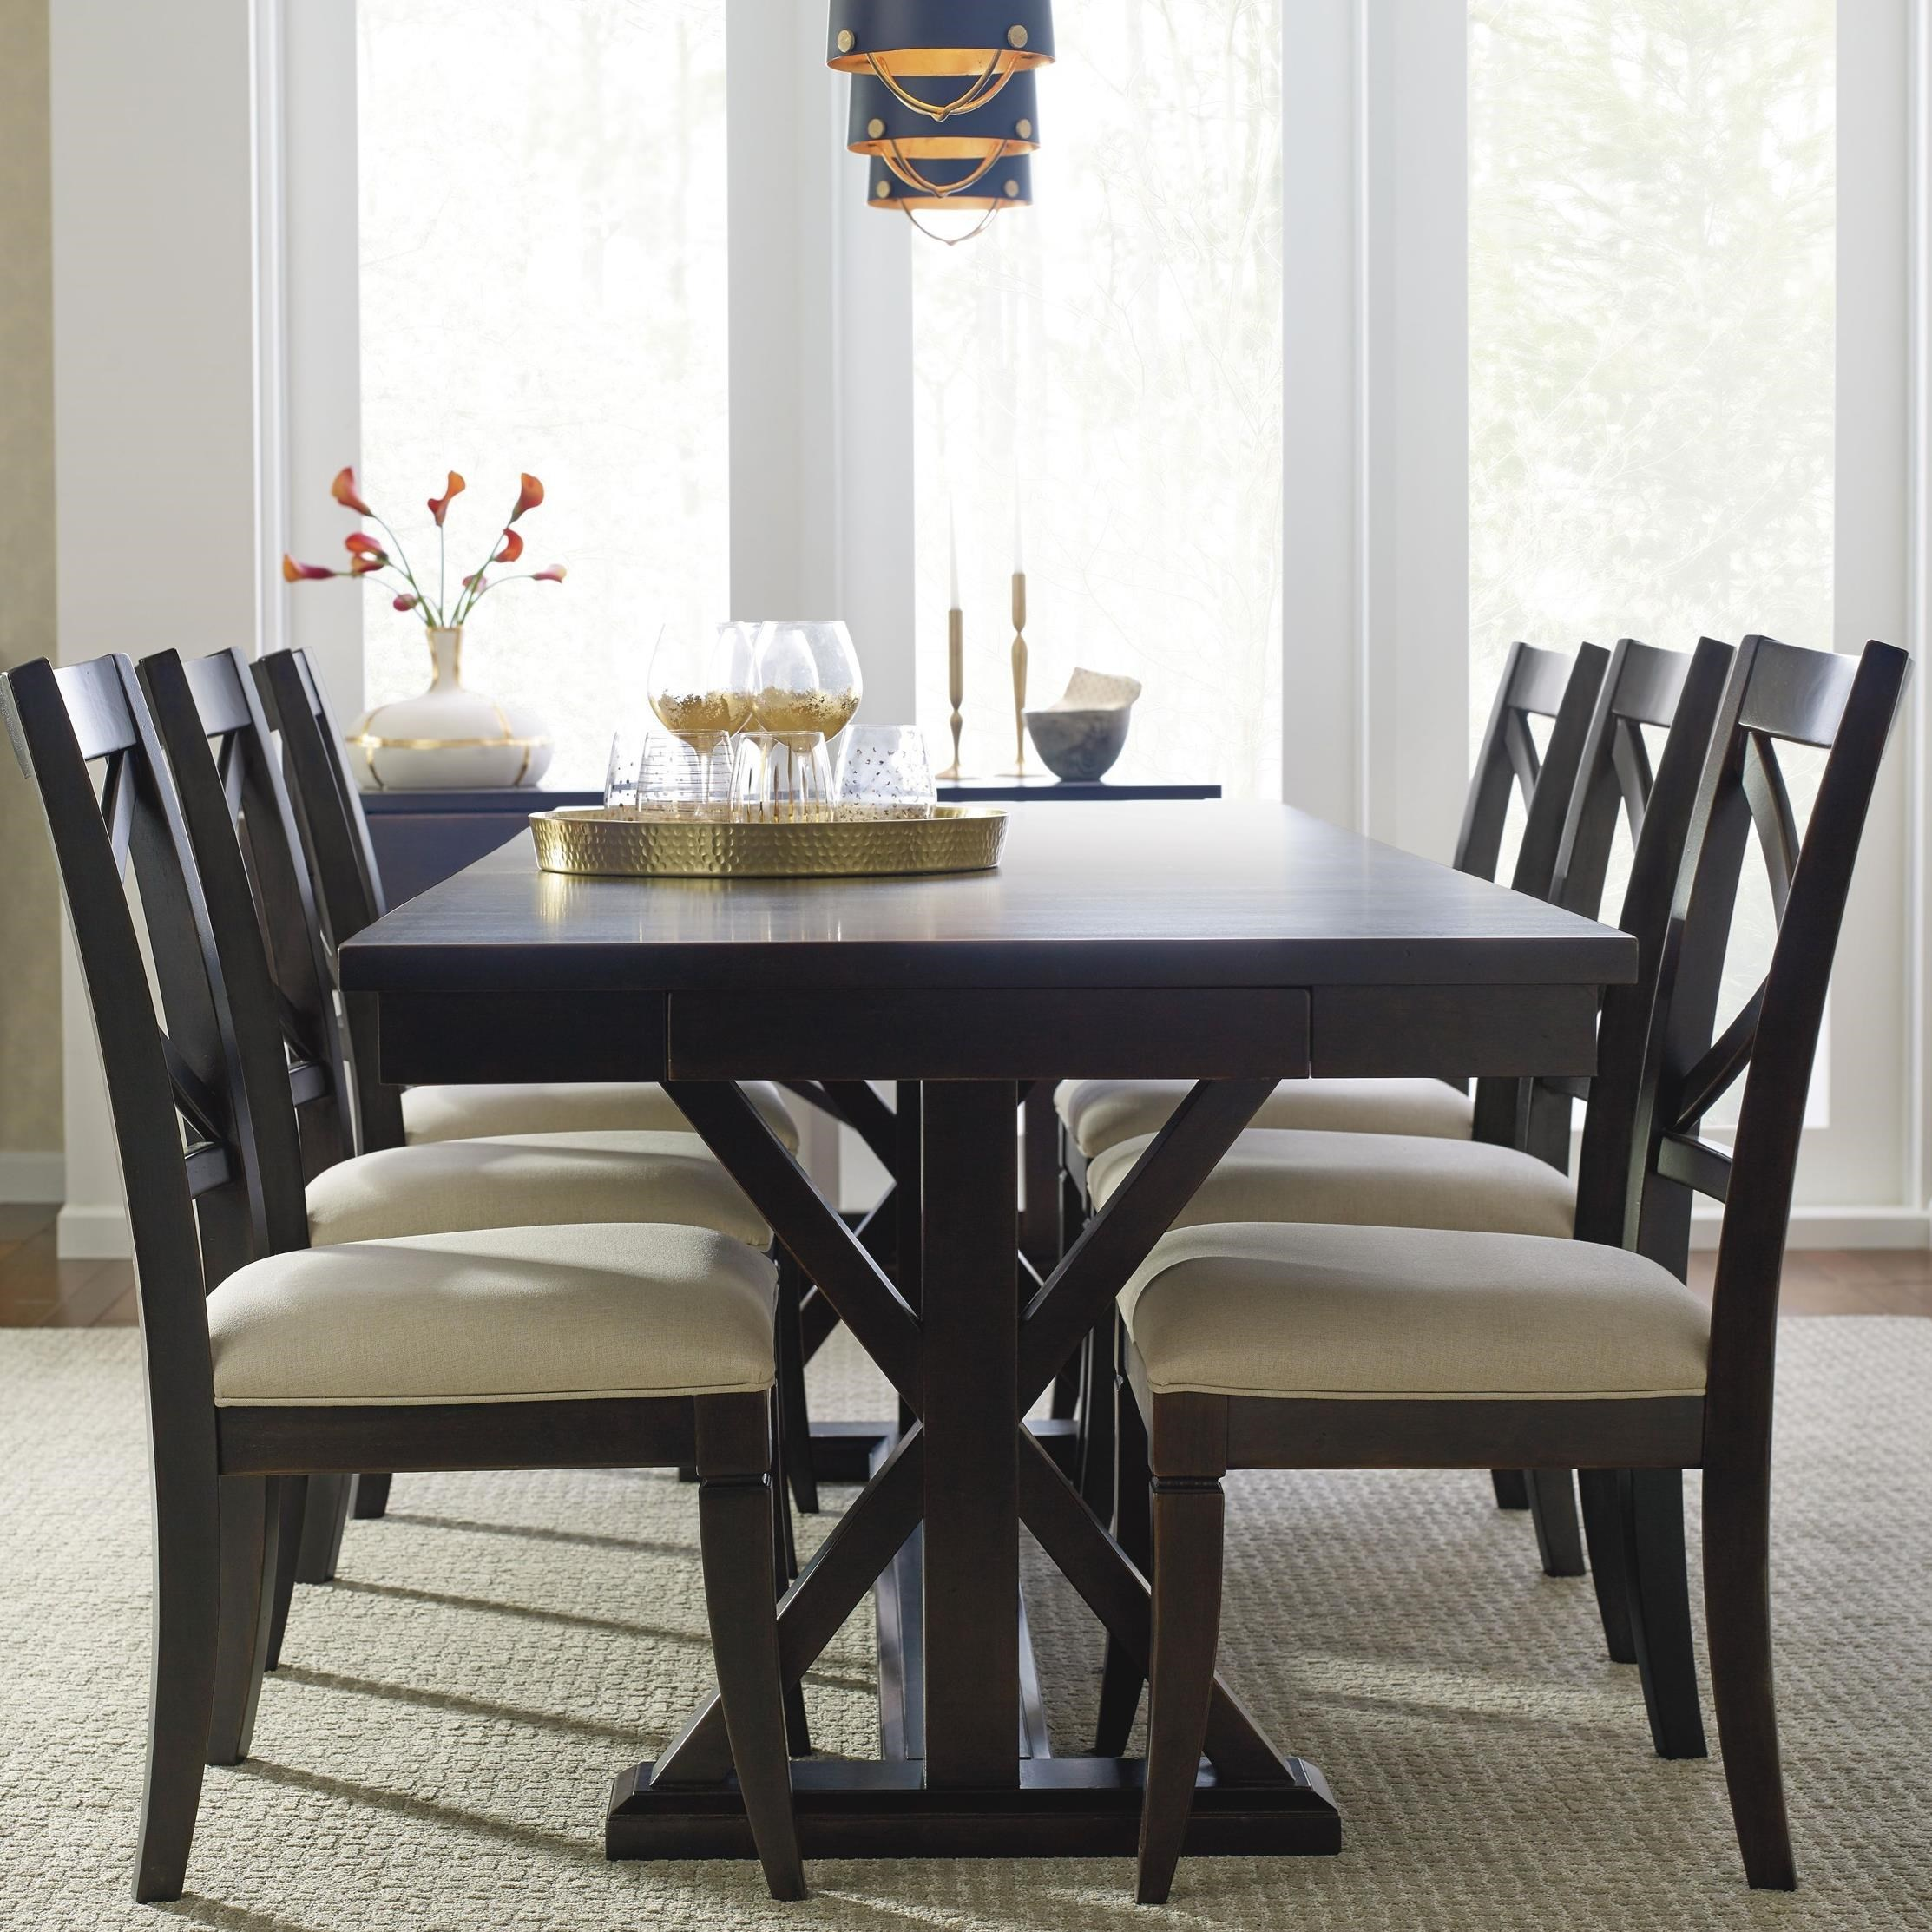 Rachael ray home by legacy classic everyday dining trestle for Rachael ray furniture collection